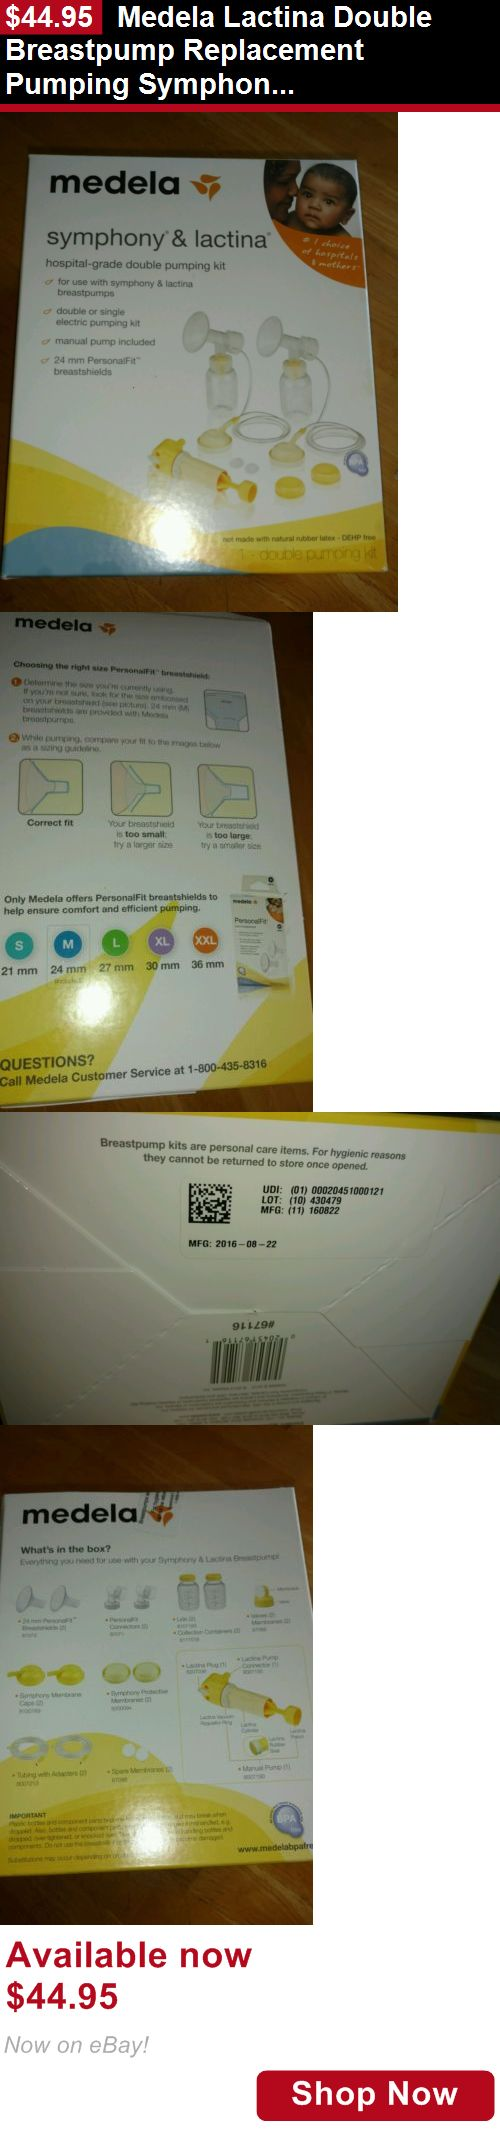 Breastfeeding Supplies: Medela Lactina Double Breastpump Replacement Pumping Symphony Kit Spare Parts BUY IT NOW ONLY: $44.95